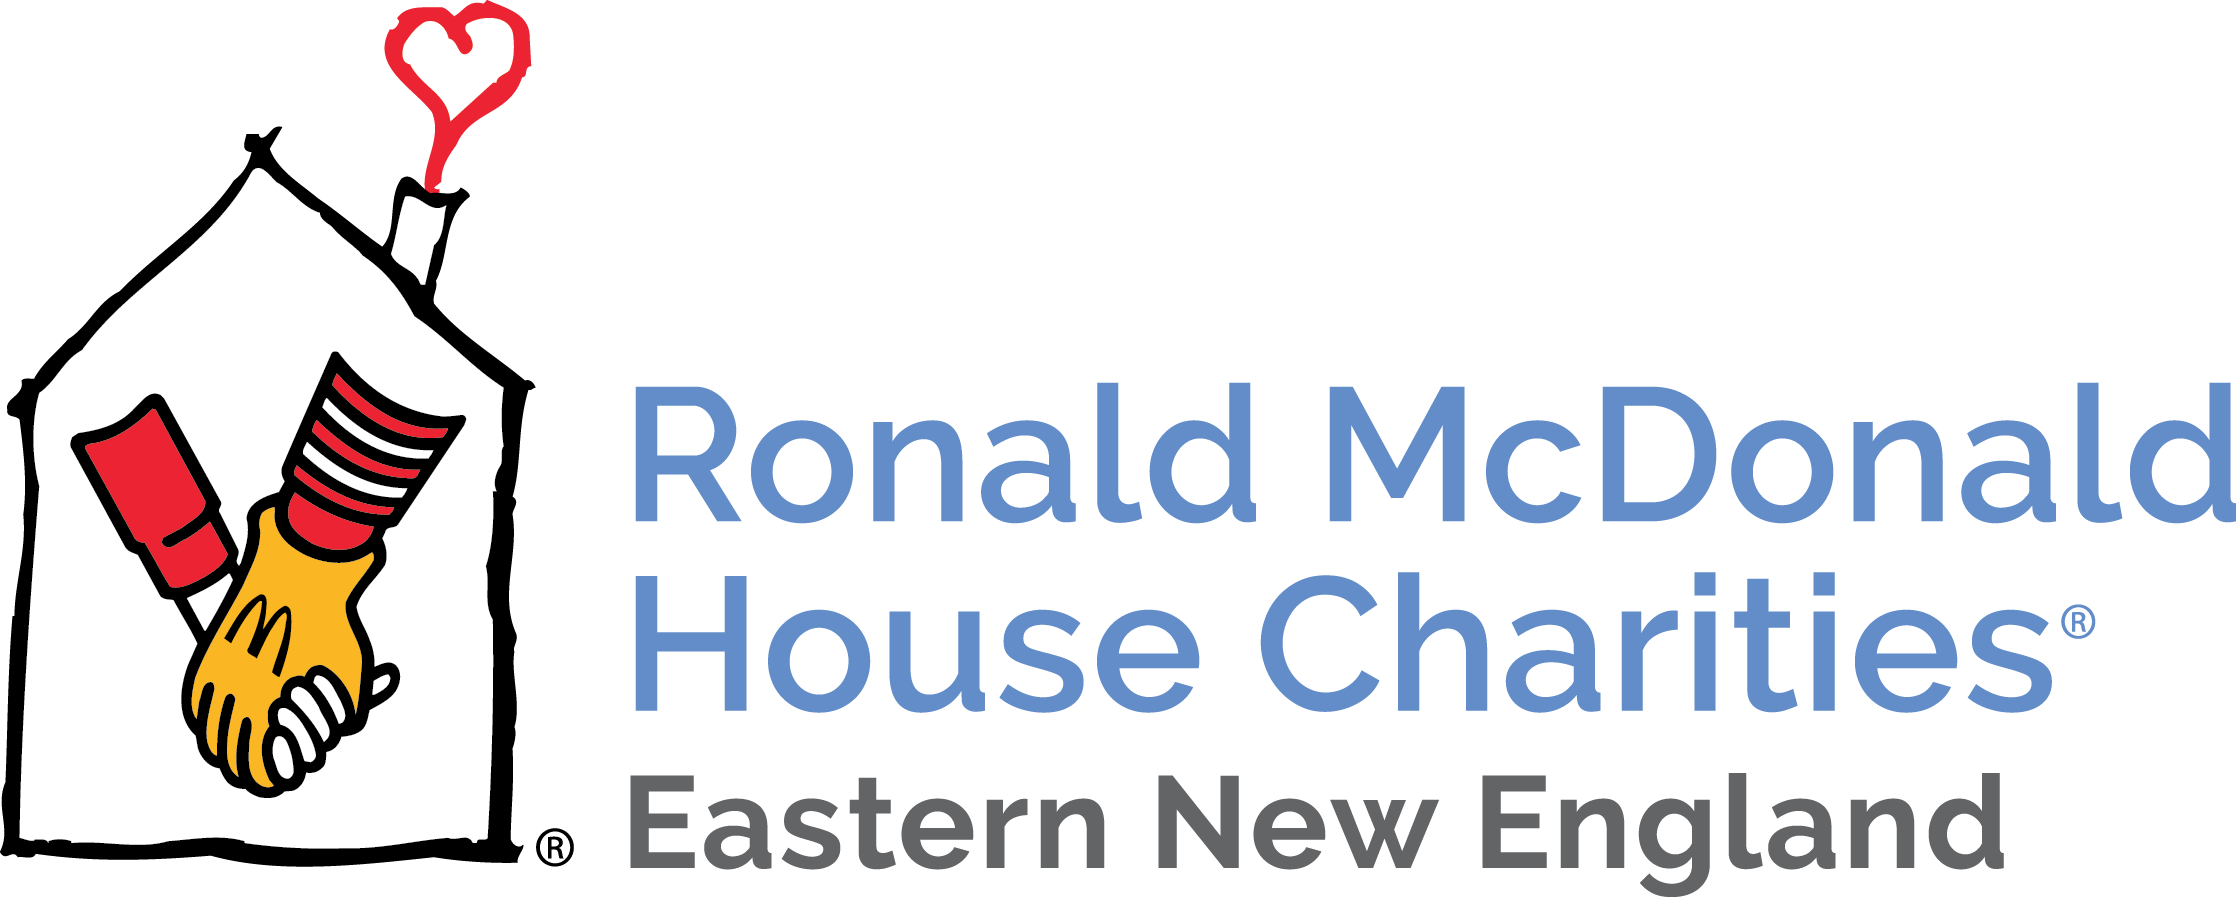 Ronald McDonald House Charities of Eastern New England